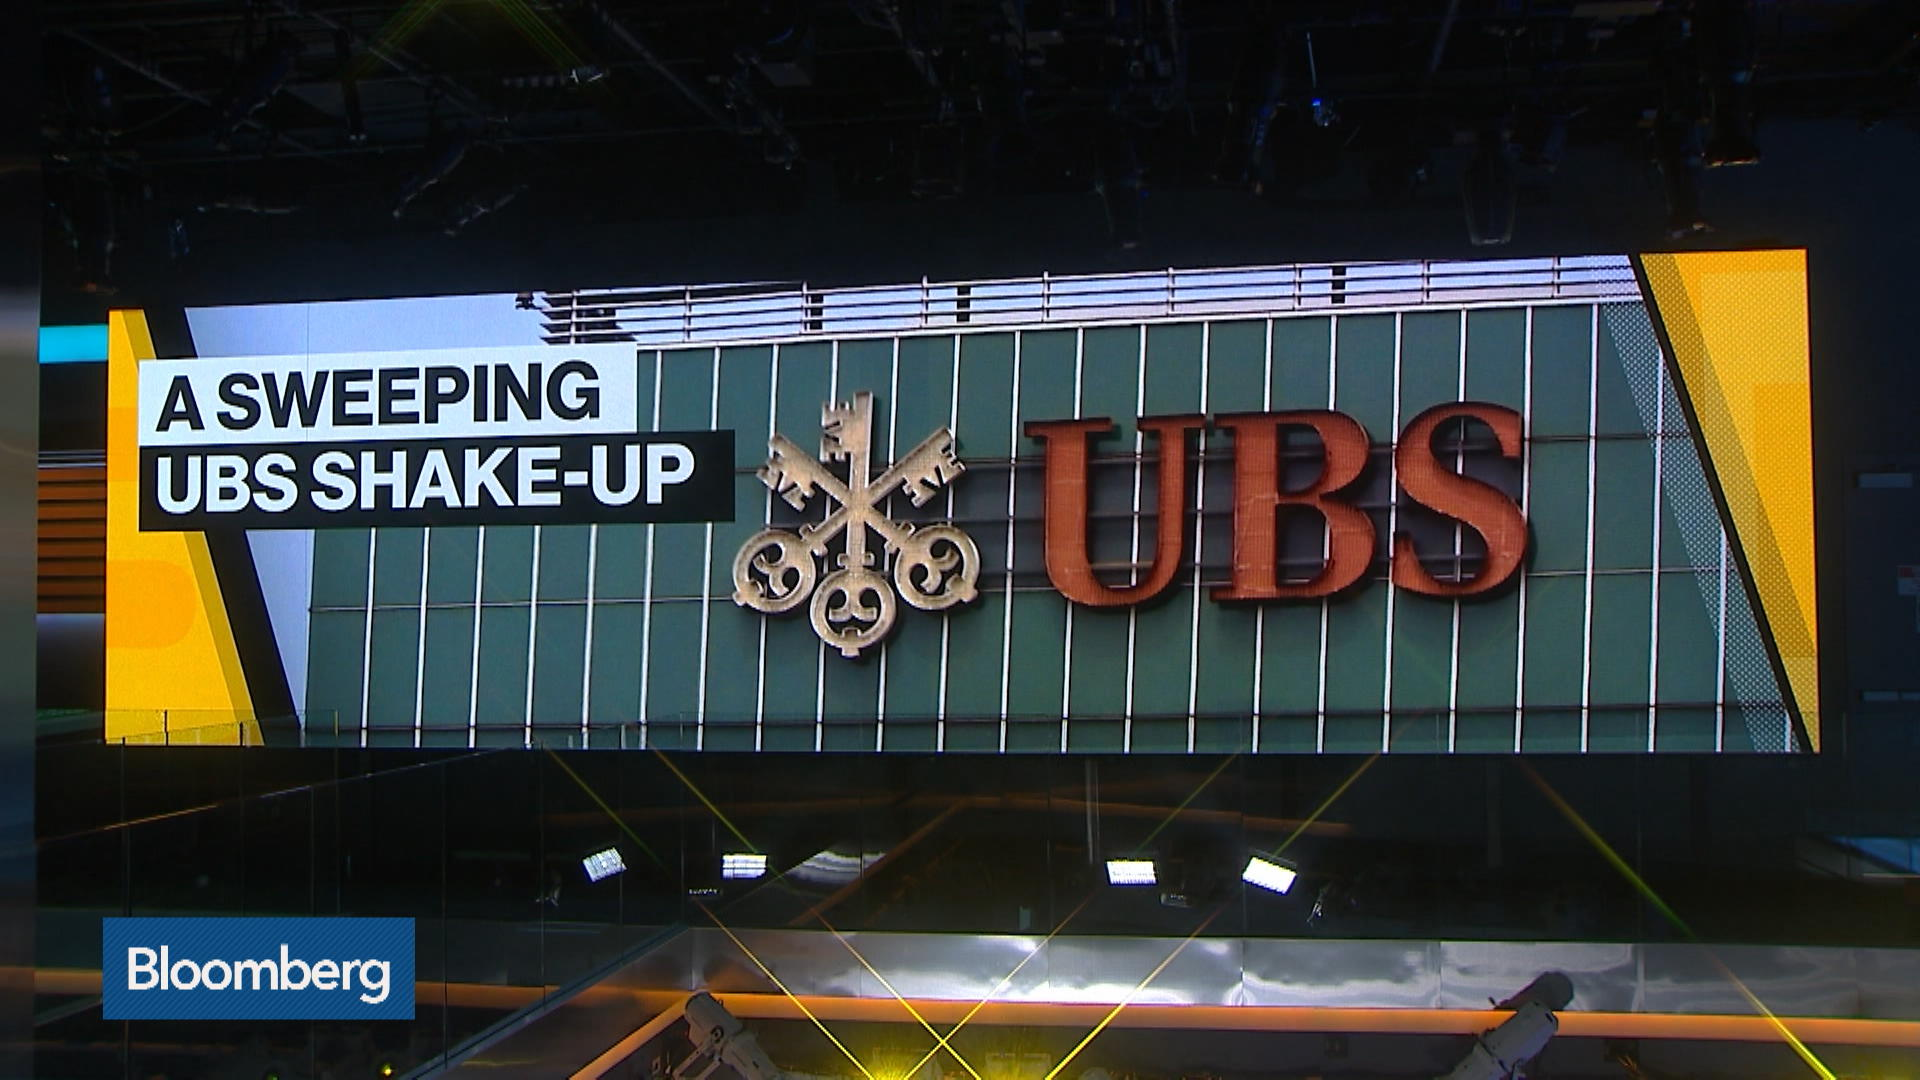 UBSG:SIX Swiss Ex Stock Quote - UBS Group AG - Bloomberg Markets